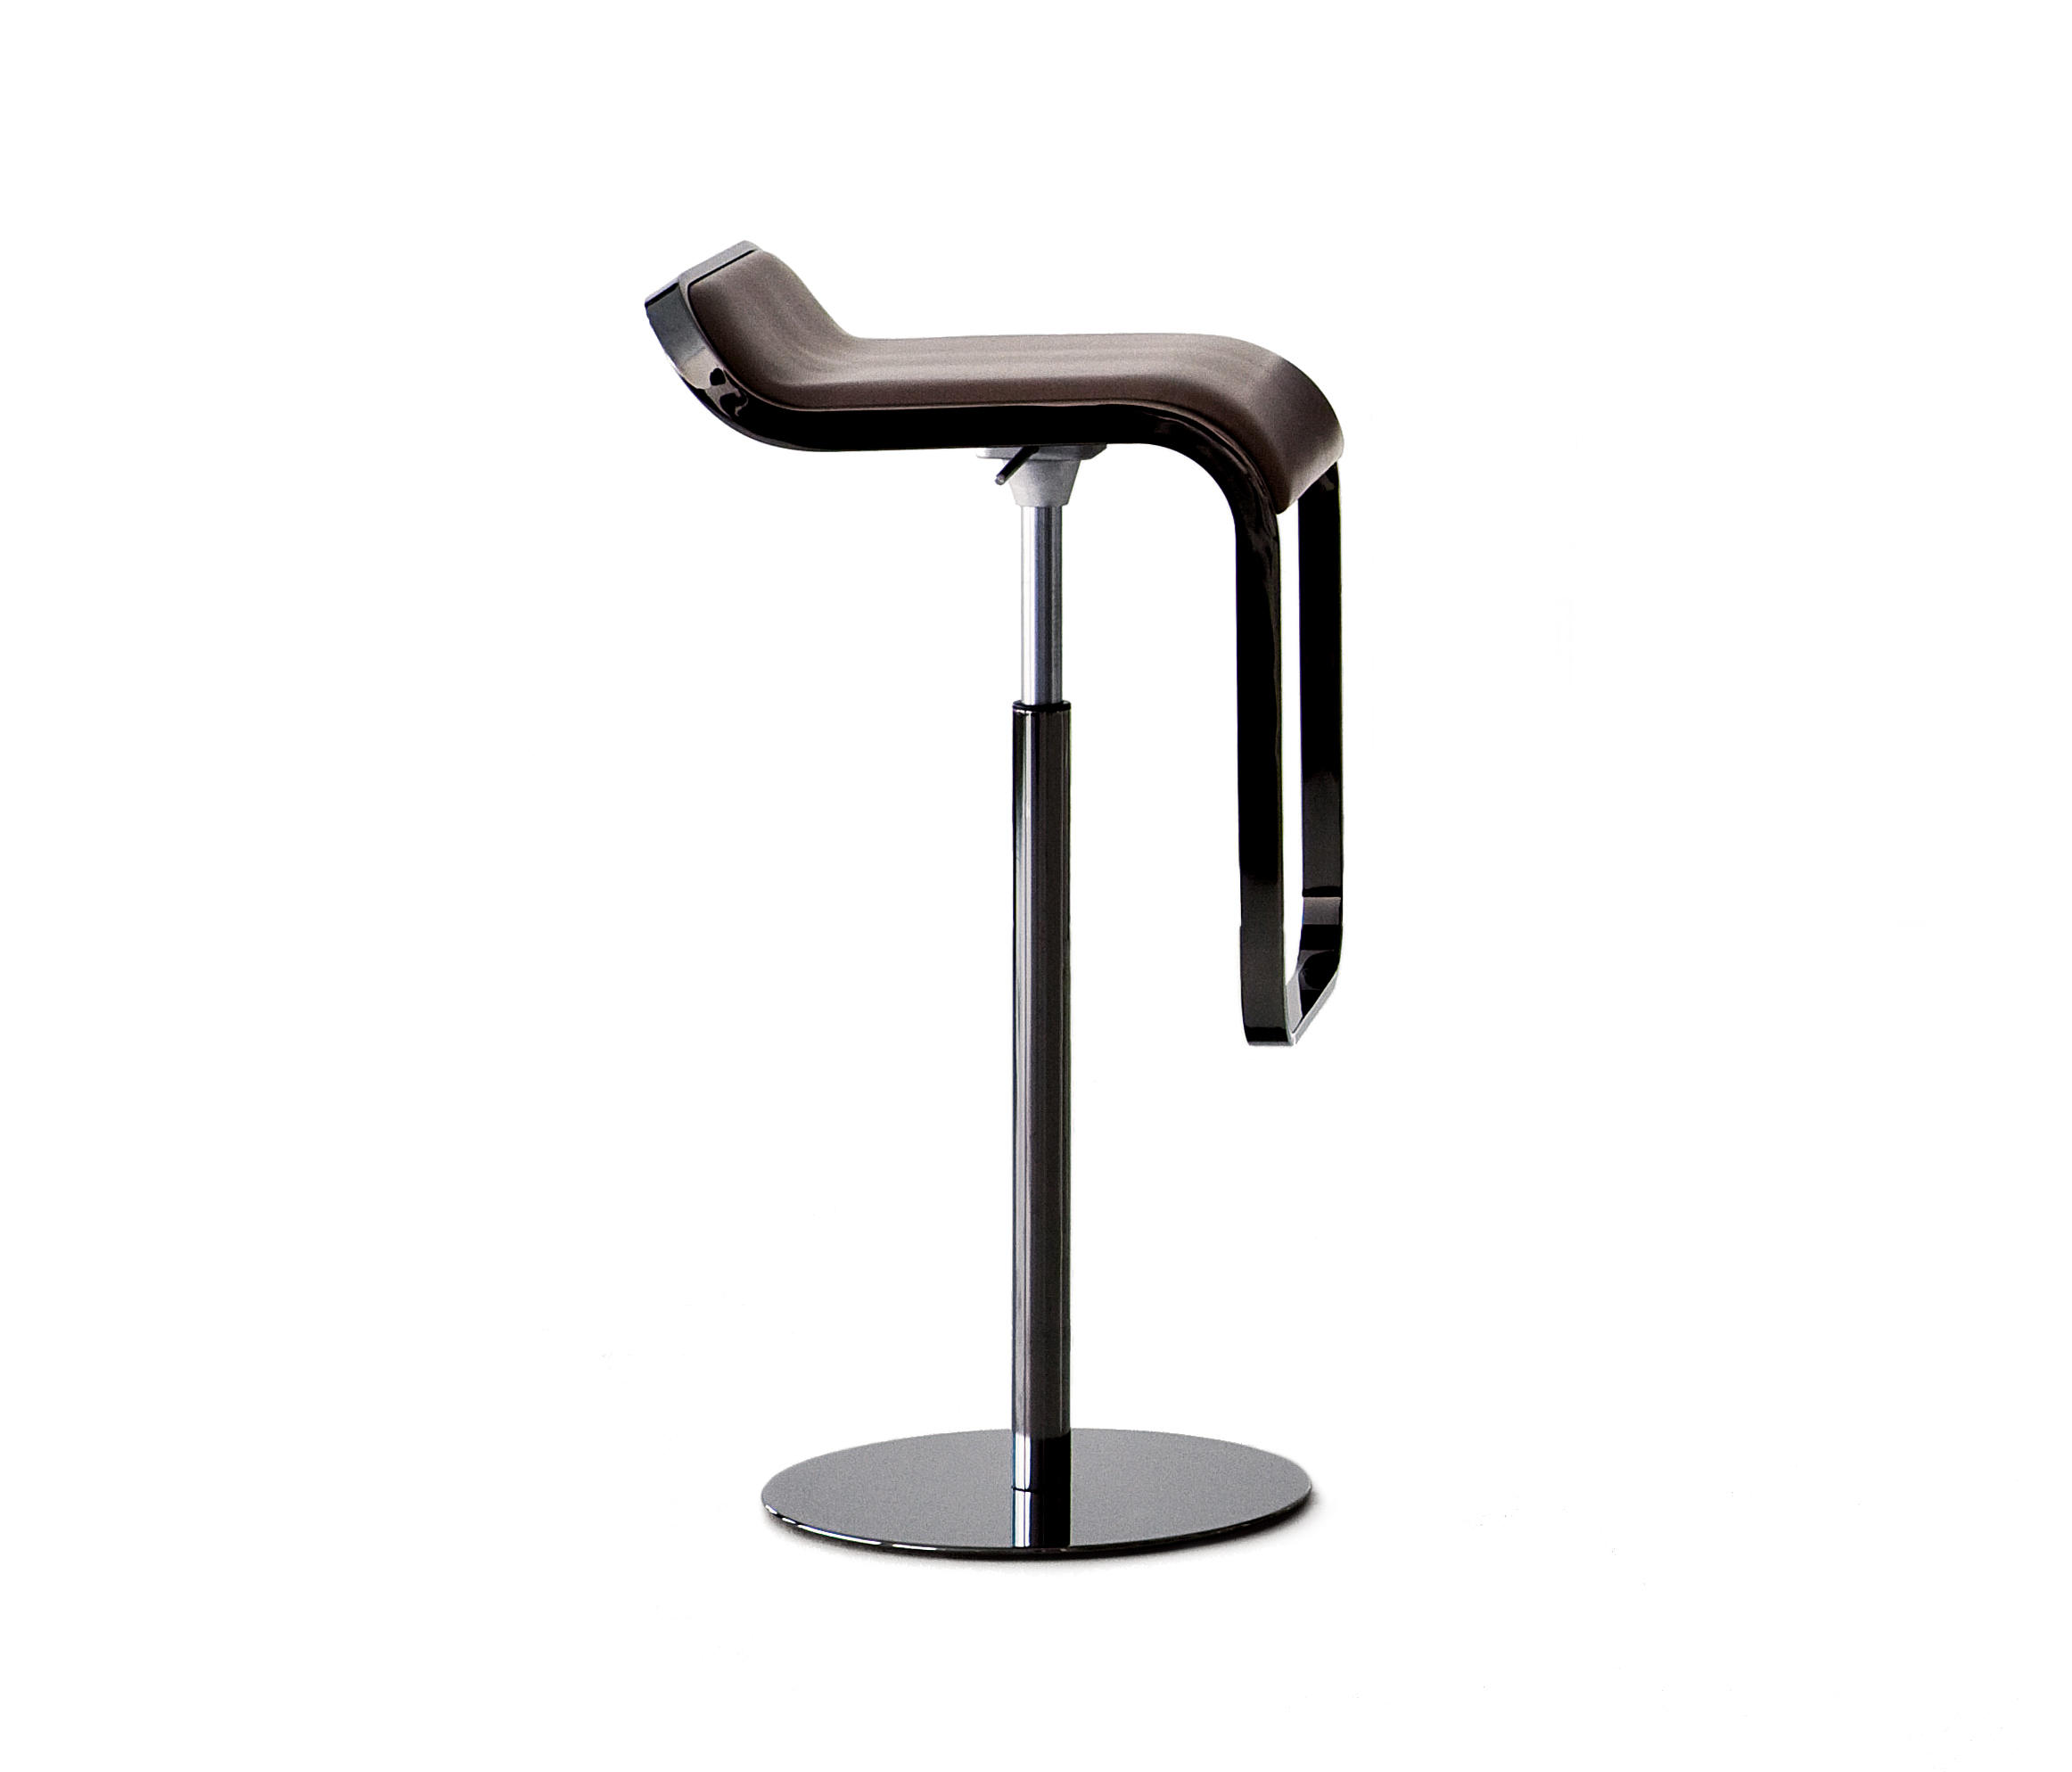 lem bar stools from lapalma architonic. Black Bedroom Furniture Sets. Home Design Ideas